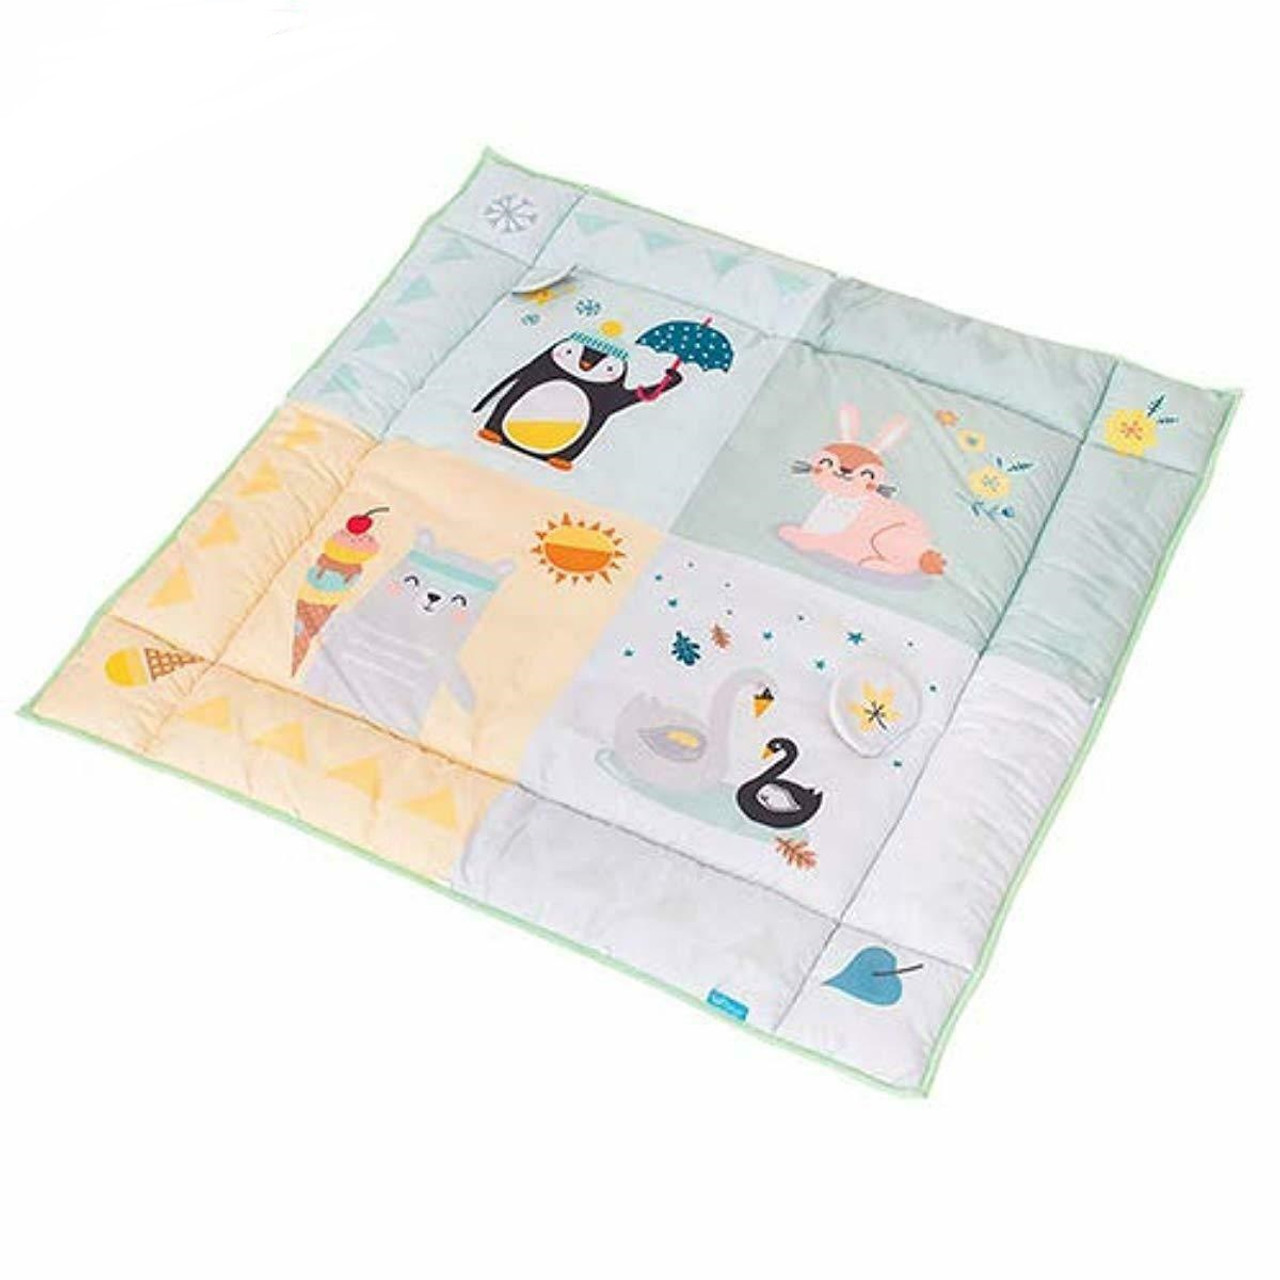 TAF Toys North Pole 4 Season Playmat at Baby Barn Discounts Beautifully illustrated play mat, specially designed to meet the developmental needs of newborn babies.